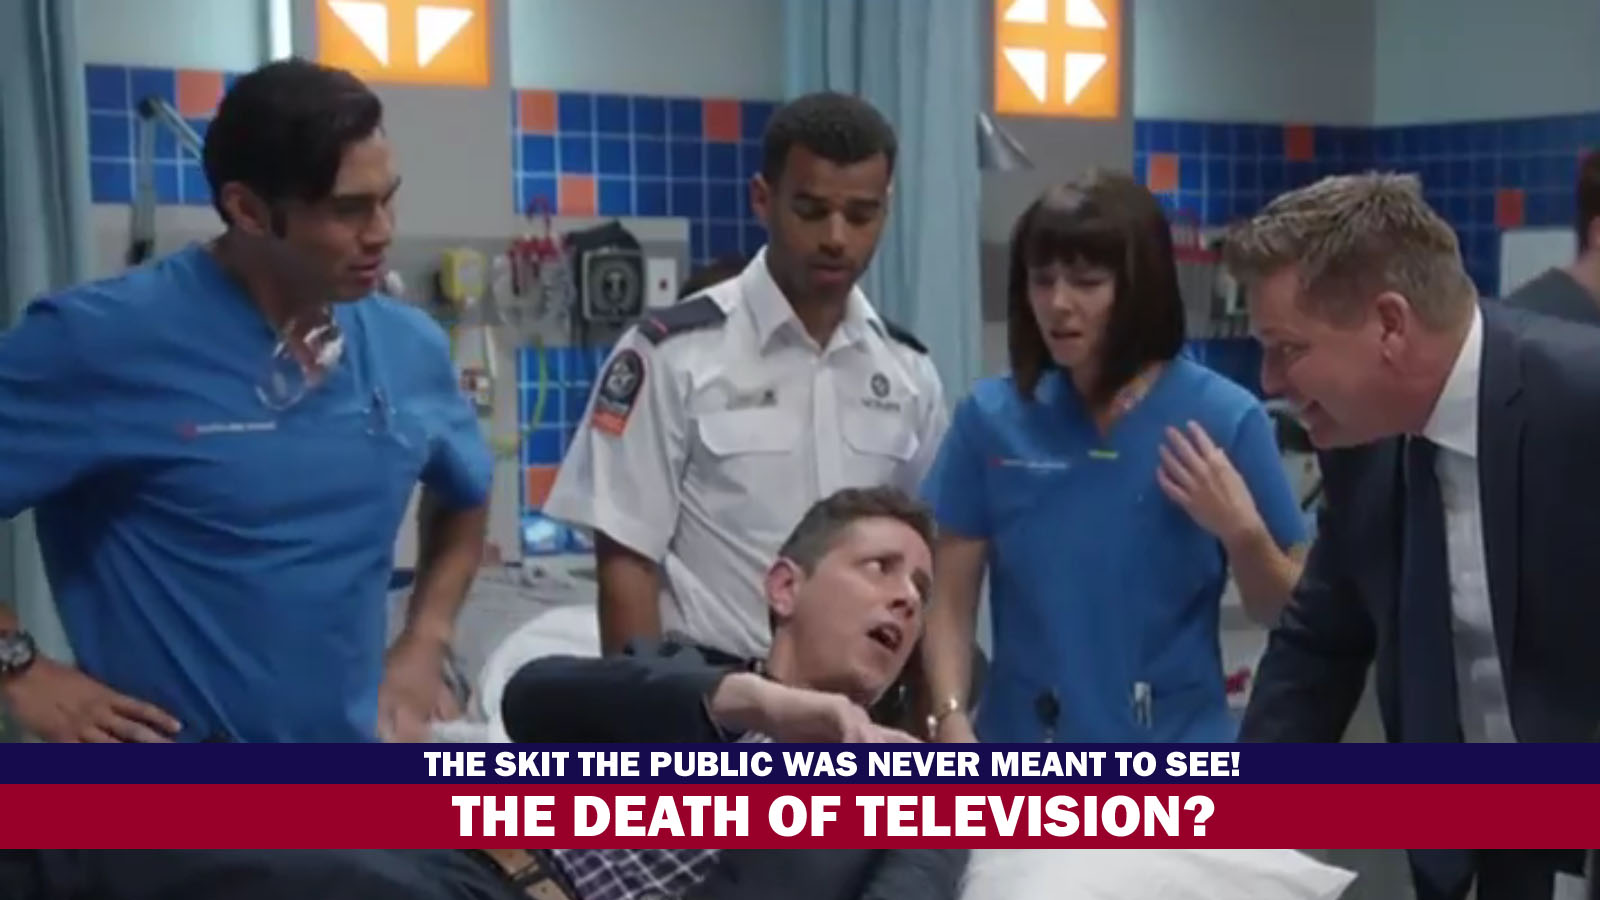 The Death of Television? The TV Awards skit the public was never meant to see!